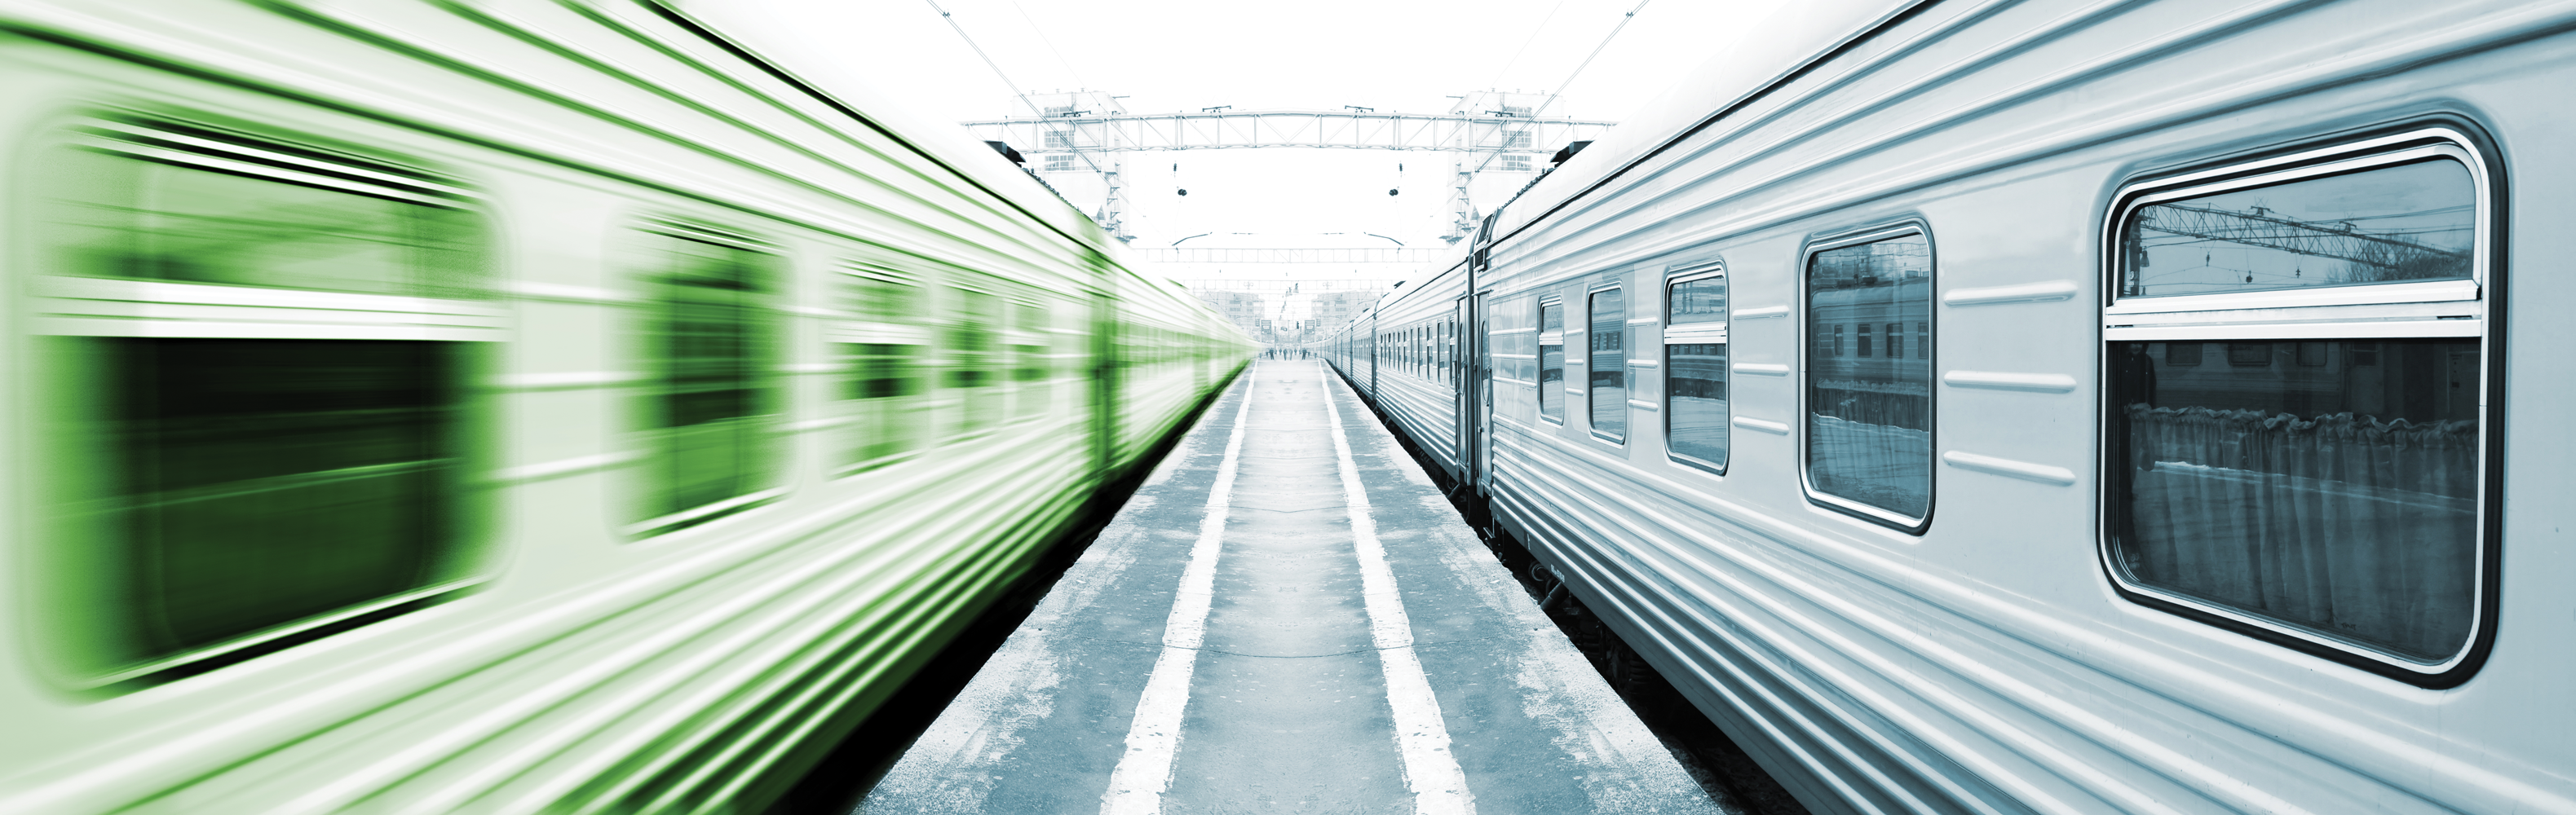 /IMG/456/169456/trains-platform.png